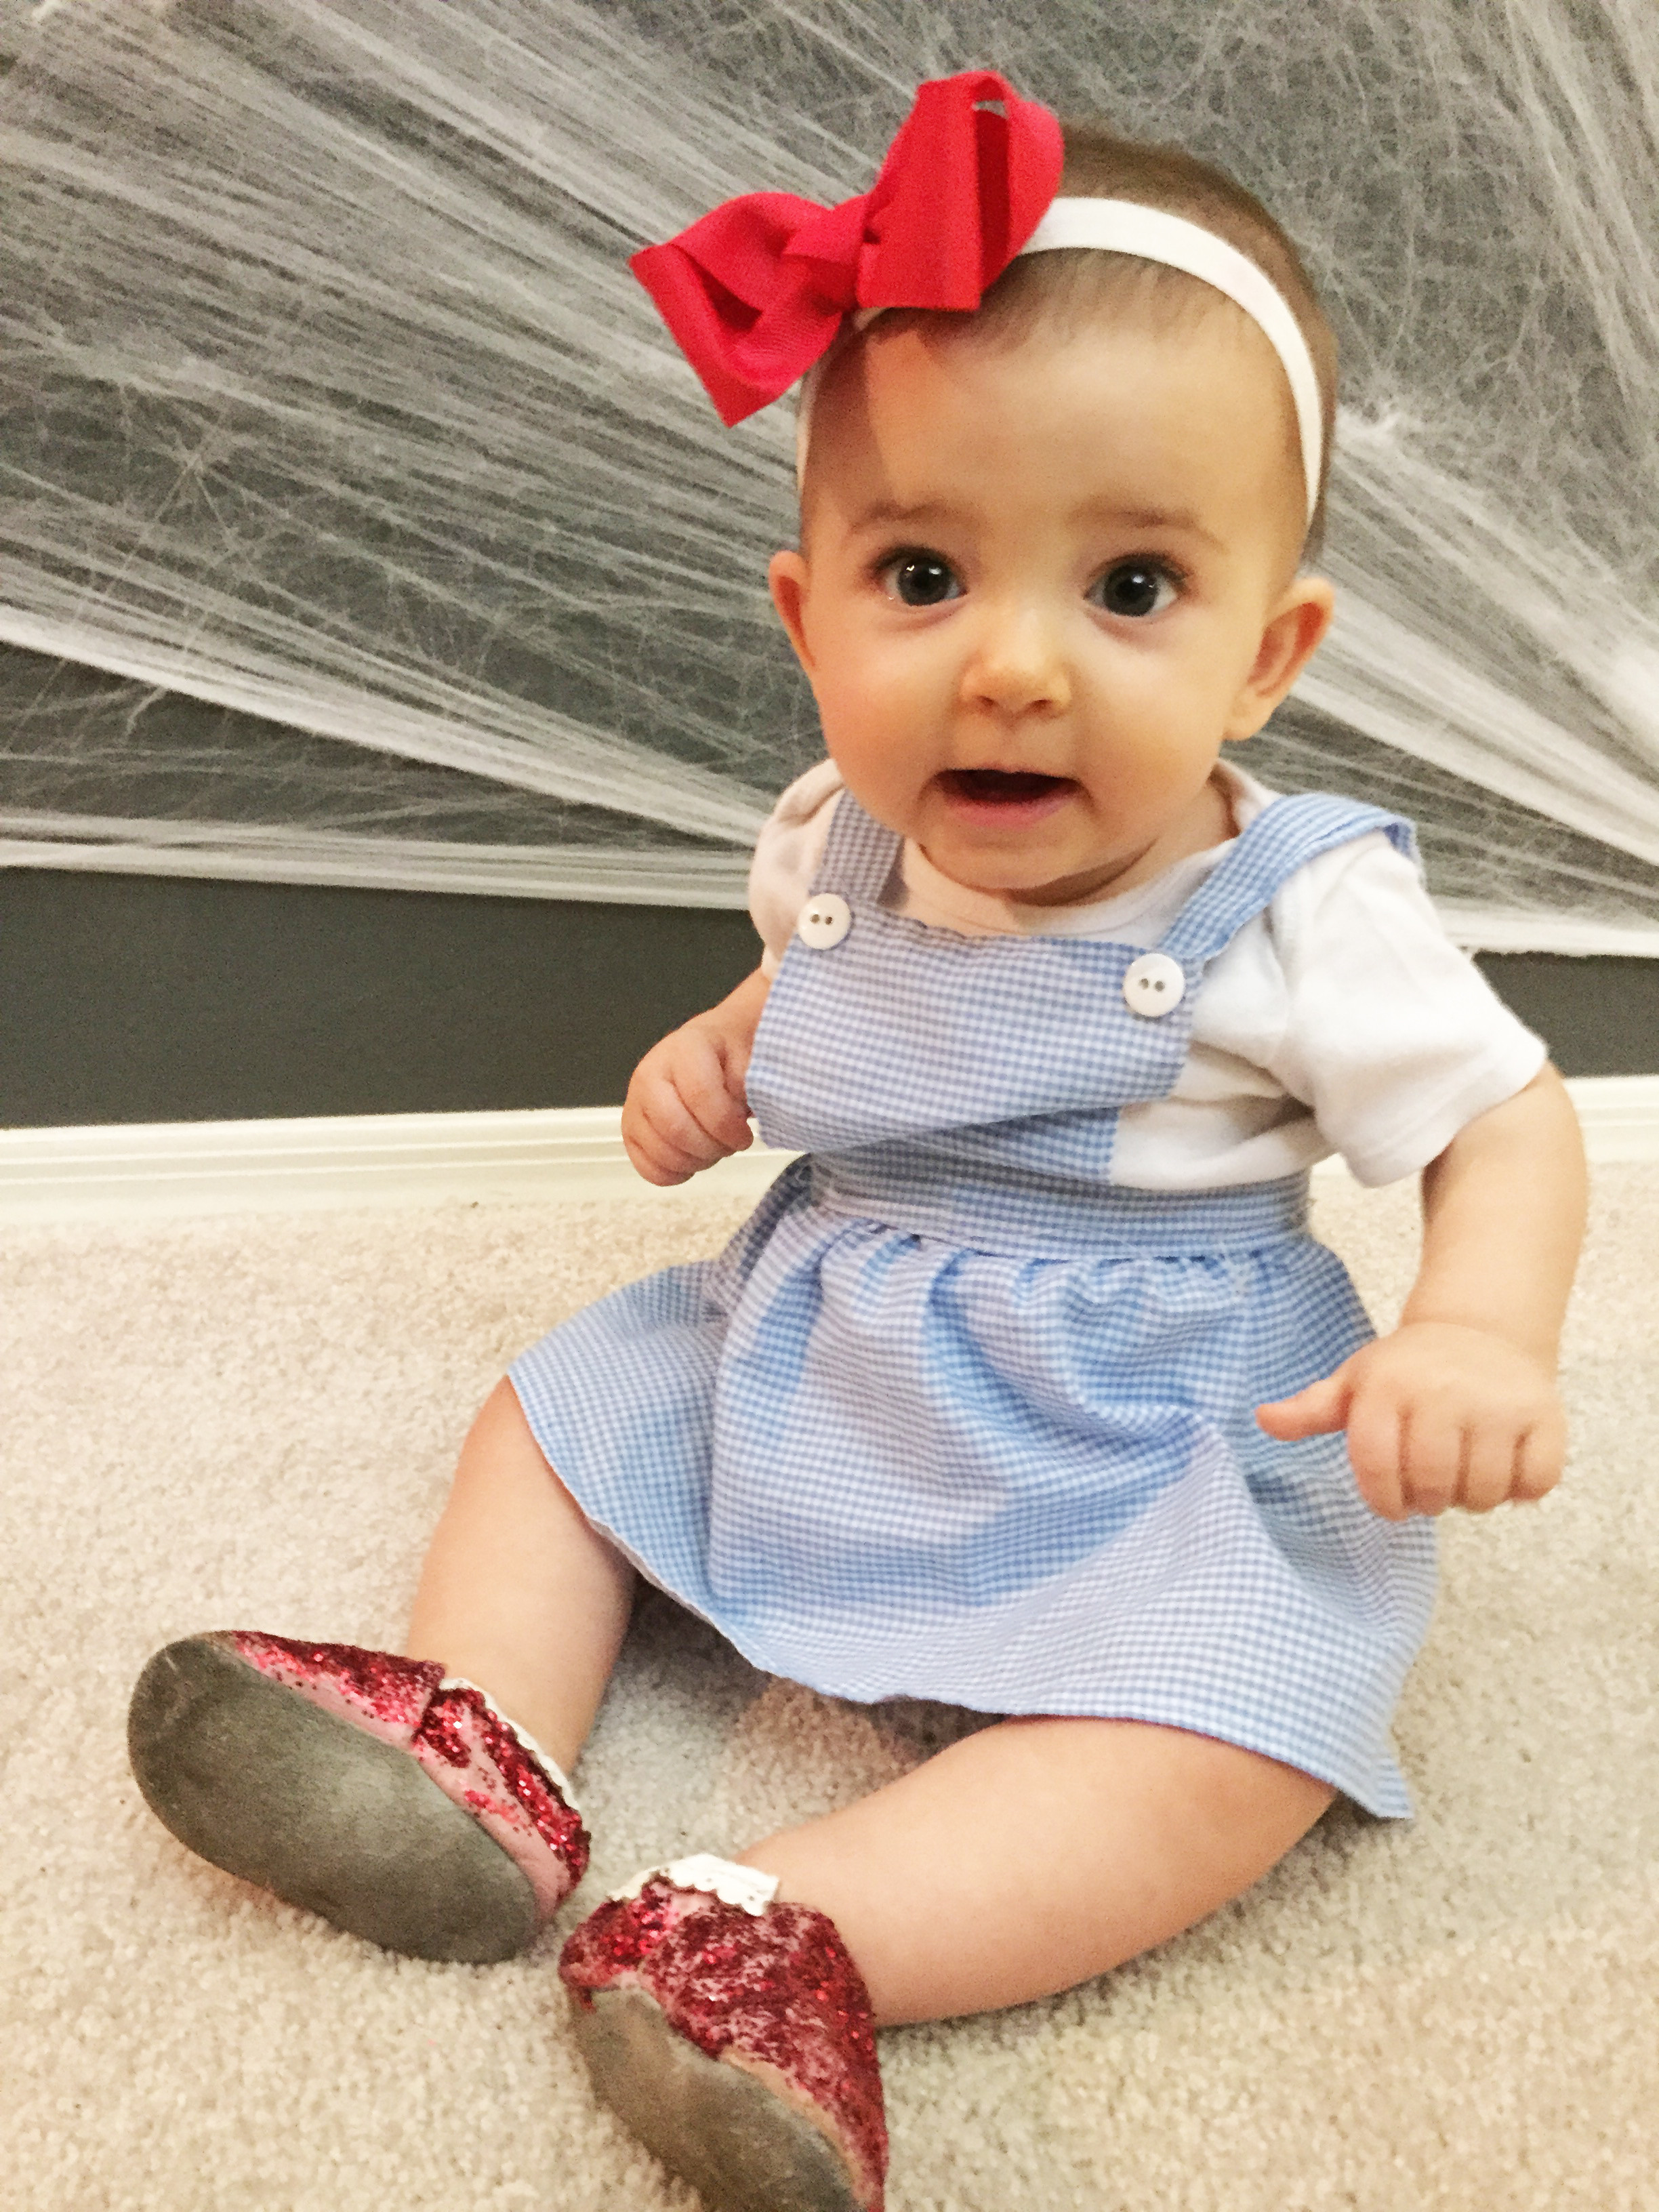 DIY Newborn Halloween Costumes  DIY Family Halloween Costume Ideas A Happier Home